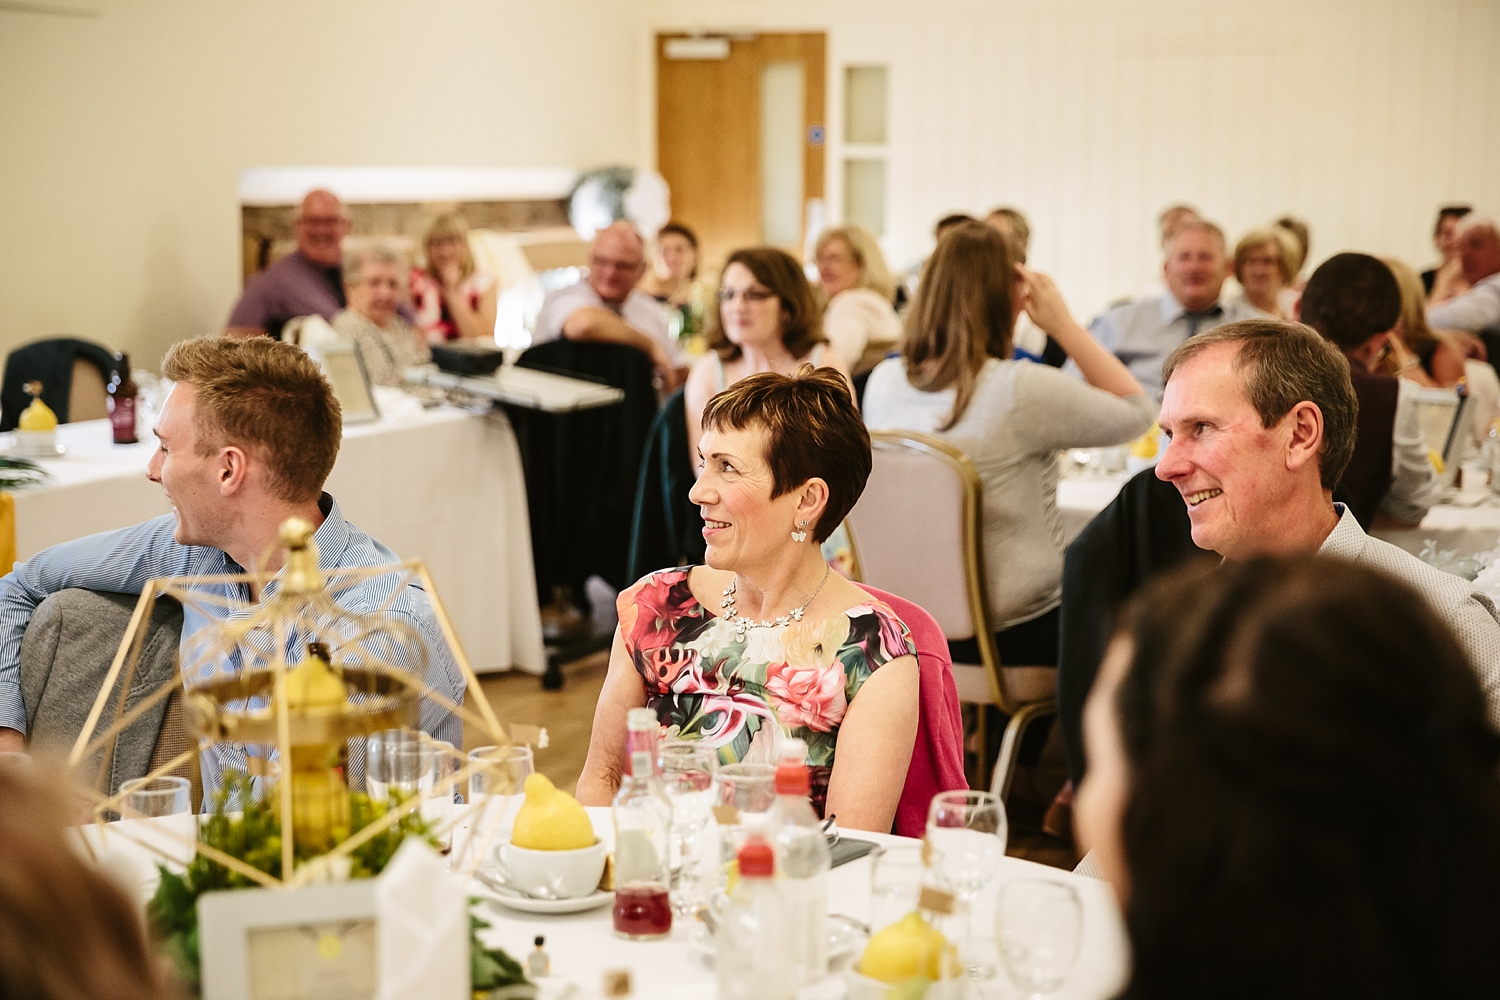 Natlie-Matthew-yorkshire-natural-relaxed-fun-documentary-reportage-candid-wedding-photography-photographer-Derby-Nottingham-Derbyshire-Nottinghamshire-Leicestershire-Lincolnshire-East-Midlands-73.jpg